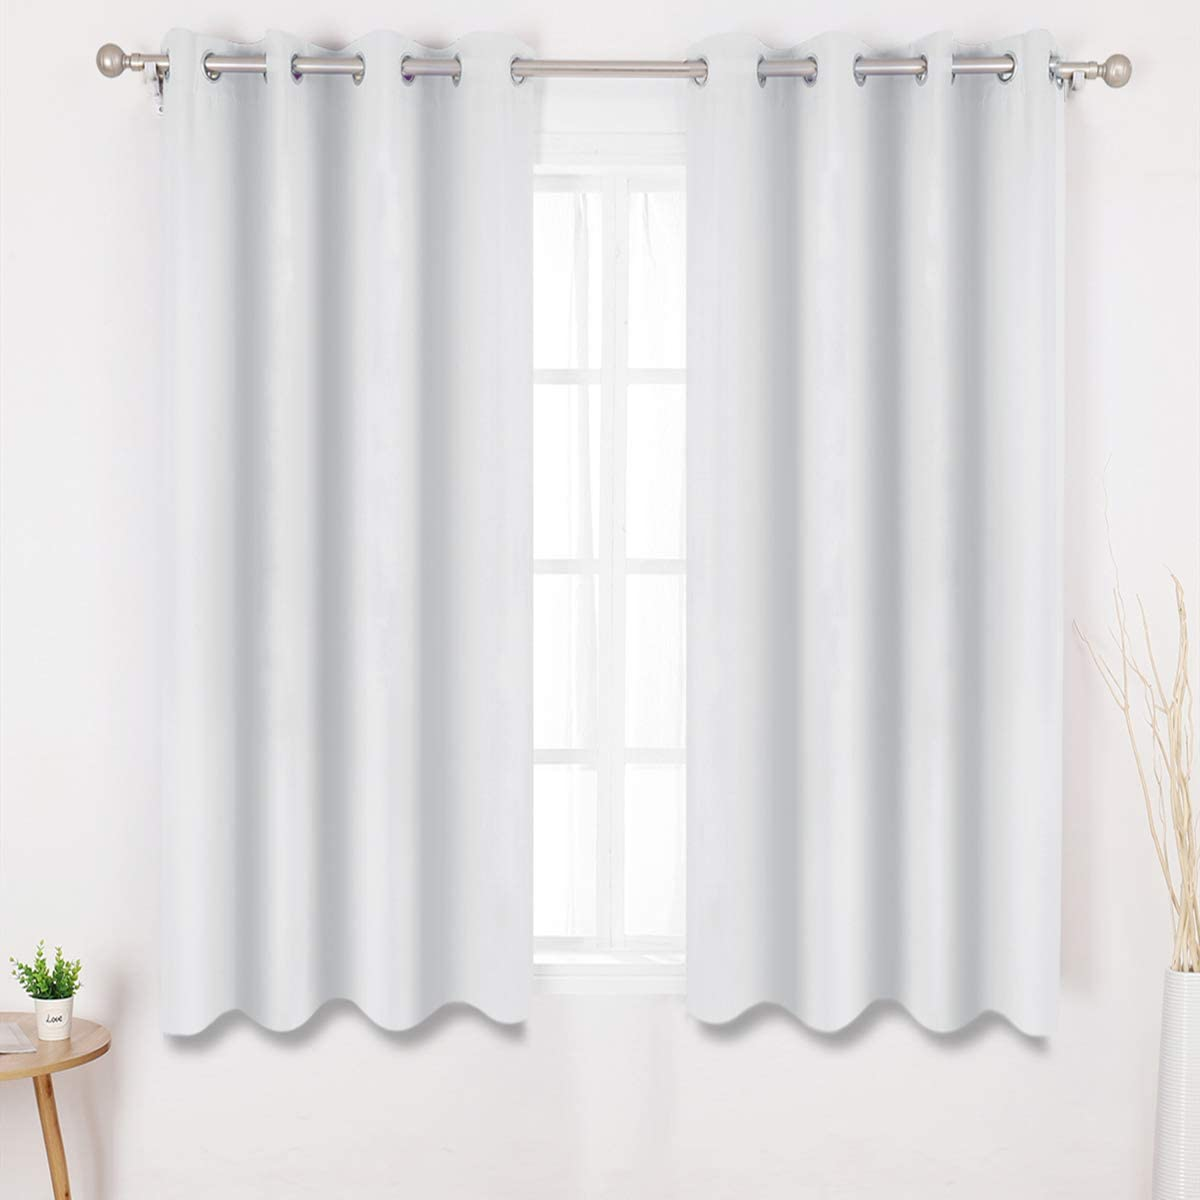 HOMEIDEAS Greyish White Blackout Curtains 52 X 63 Inch Length Set of 2 Panels Room Darkening Bedroom Curtains/Drapes, Thermal Grommet Light Bolcking Window Curtains for Living Room